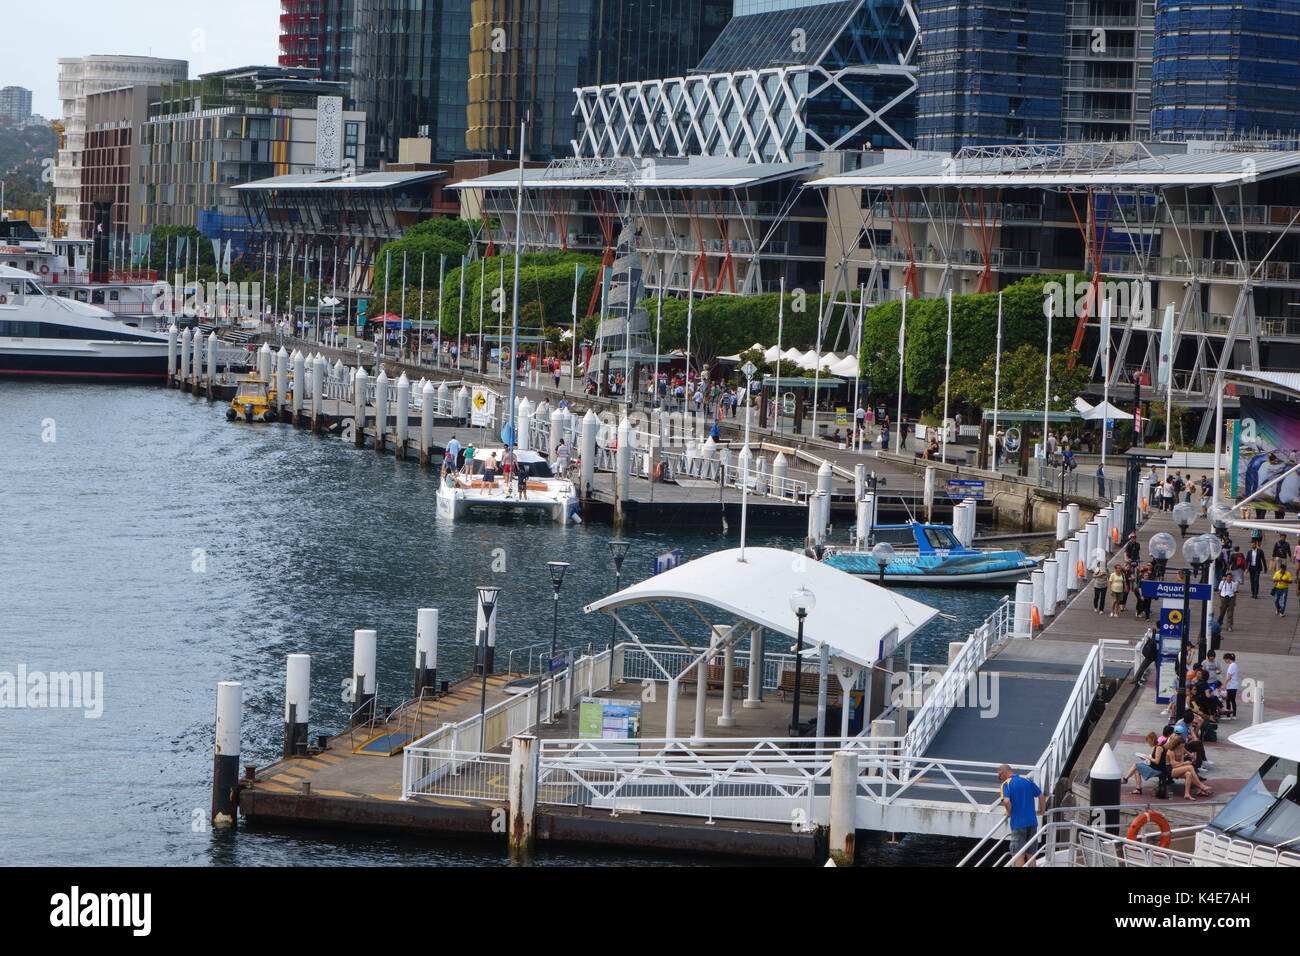 Skyscraper Buildings Along Darling Harbour Water Front At The Sydney Aquarium Ferry Stop Sydney Australia - Stock Image